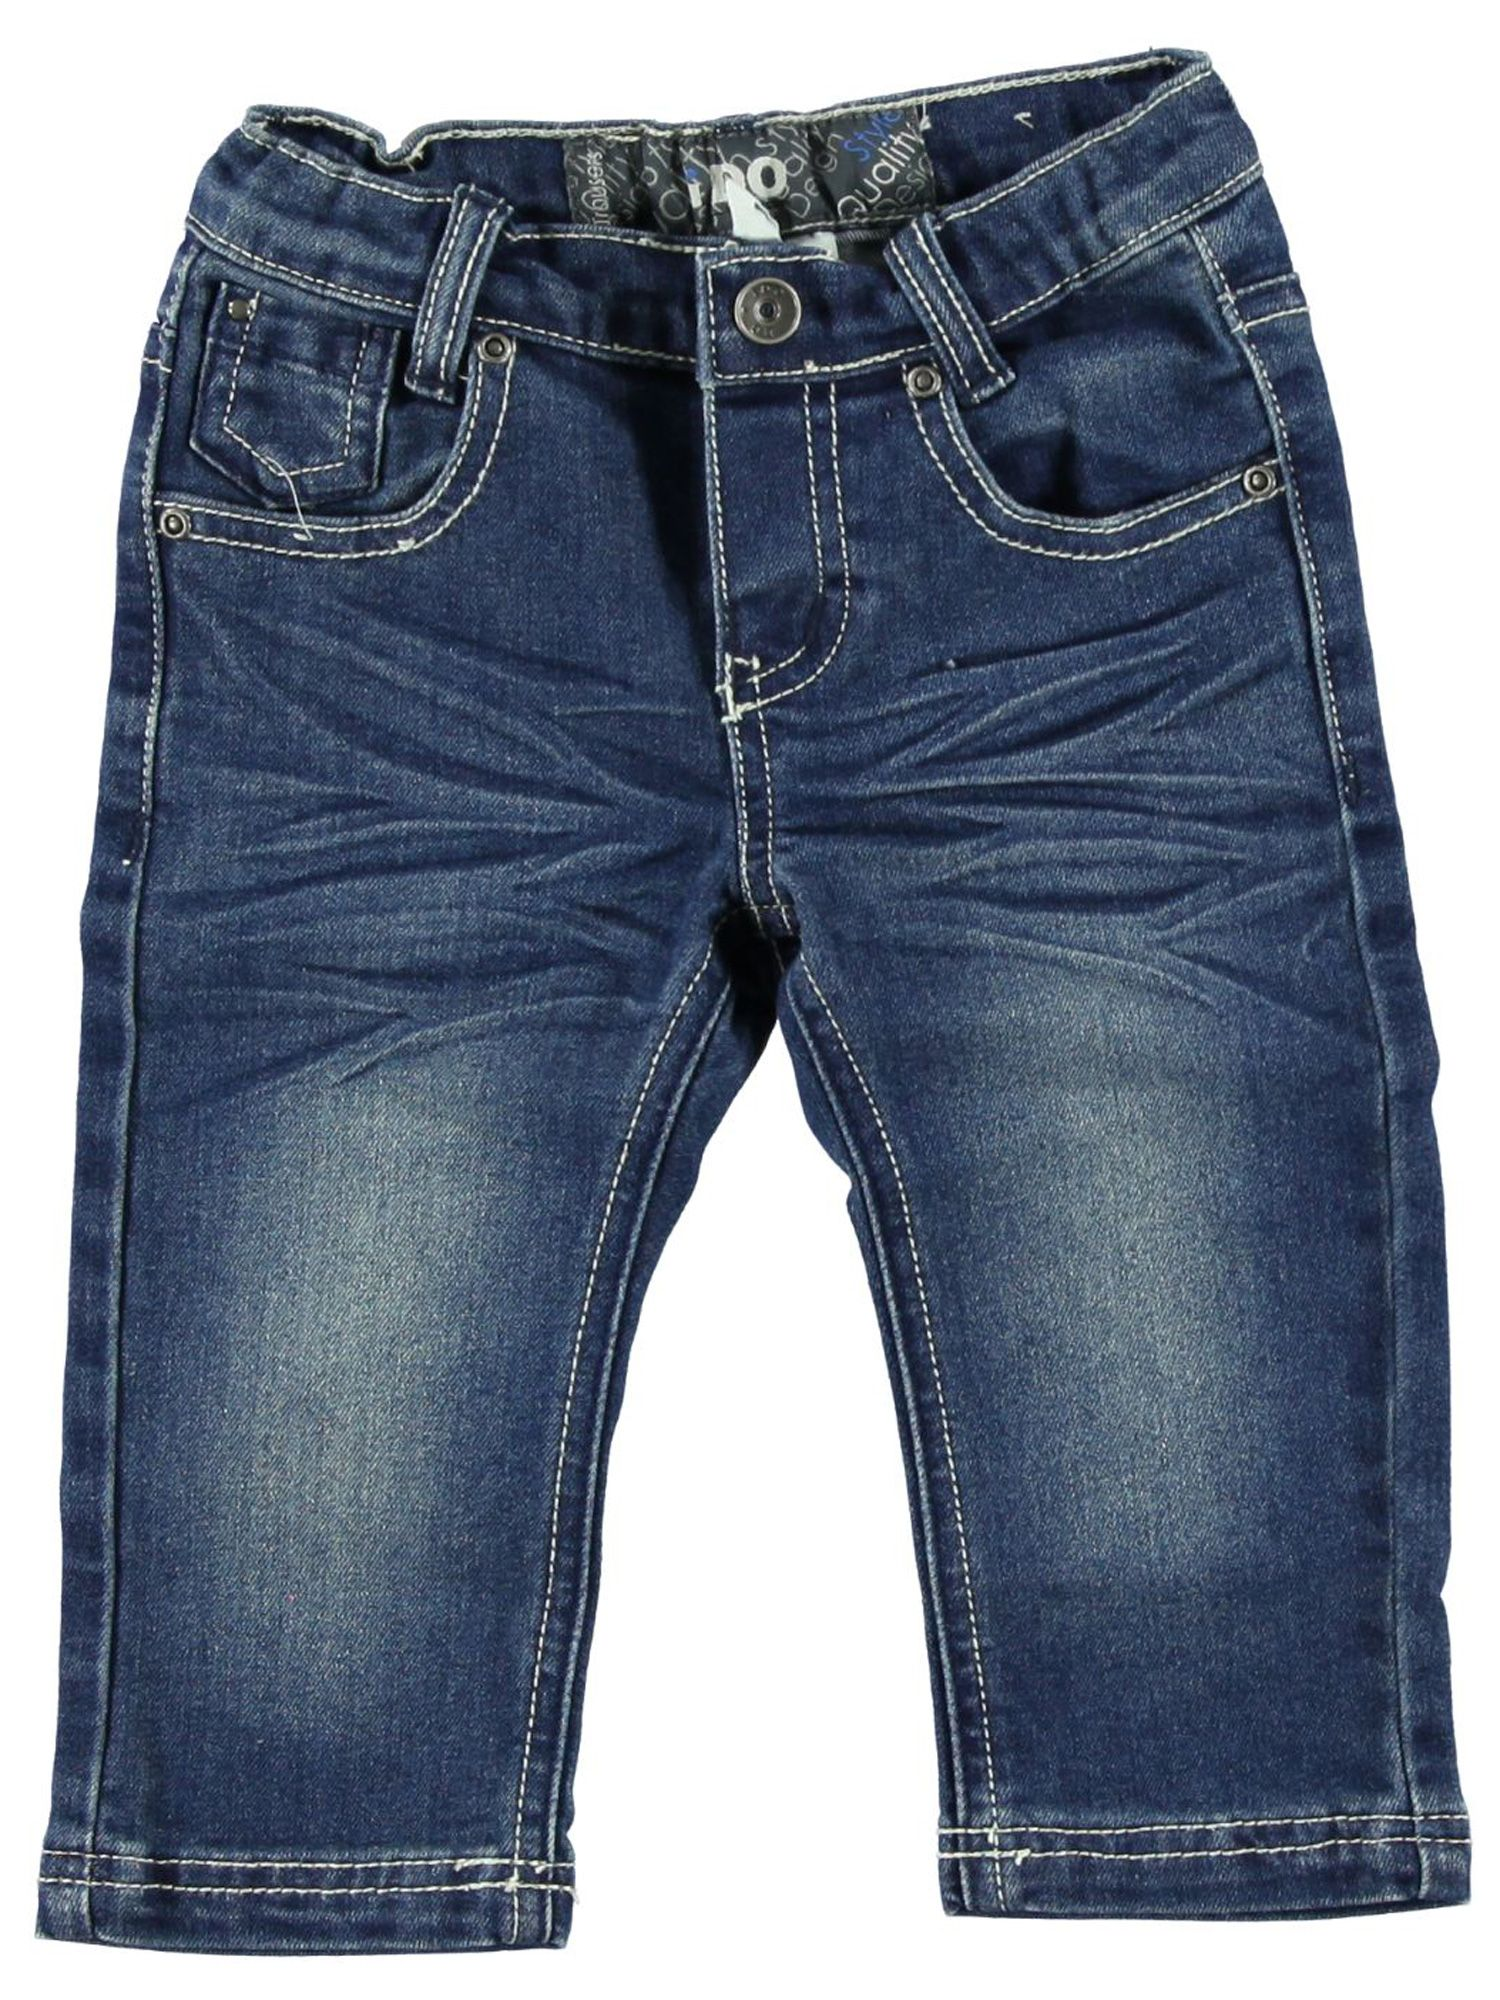 Boys 5 pocket jeans